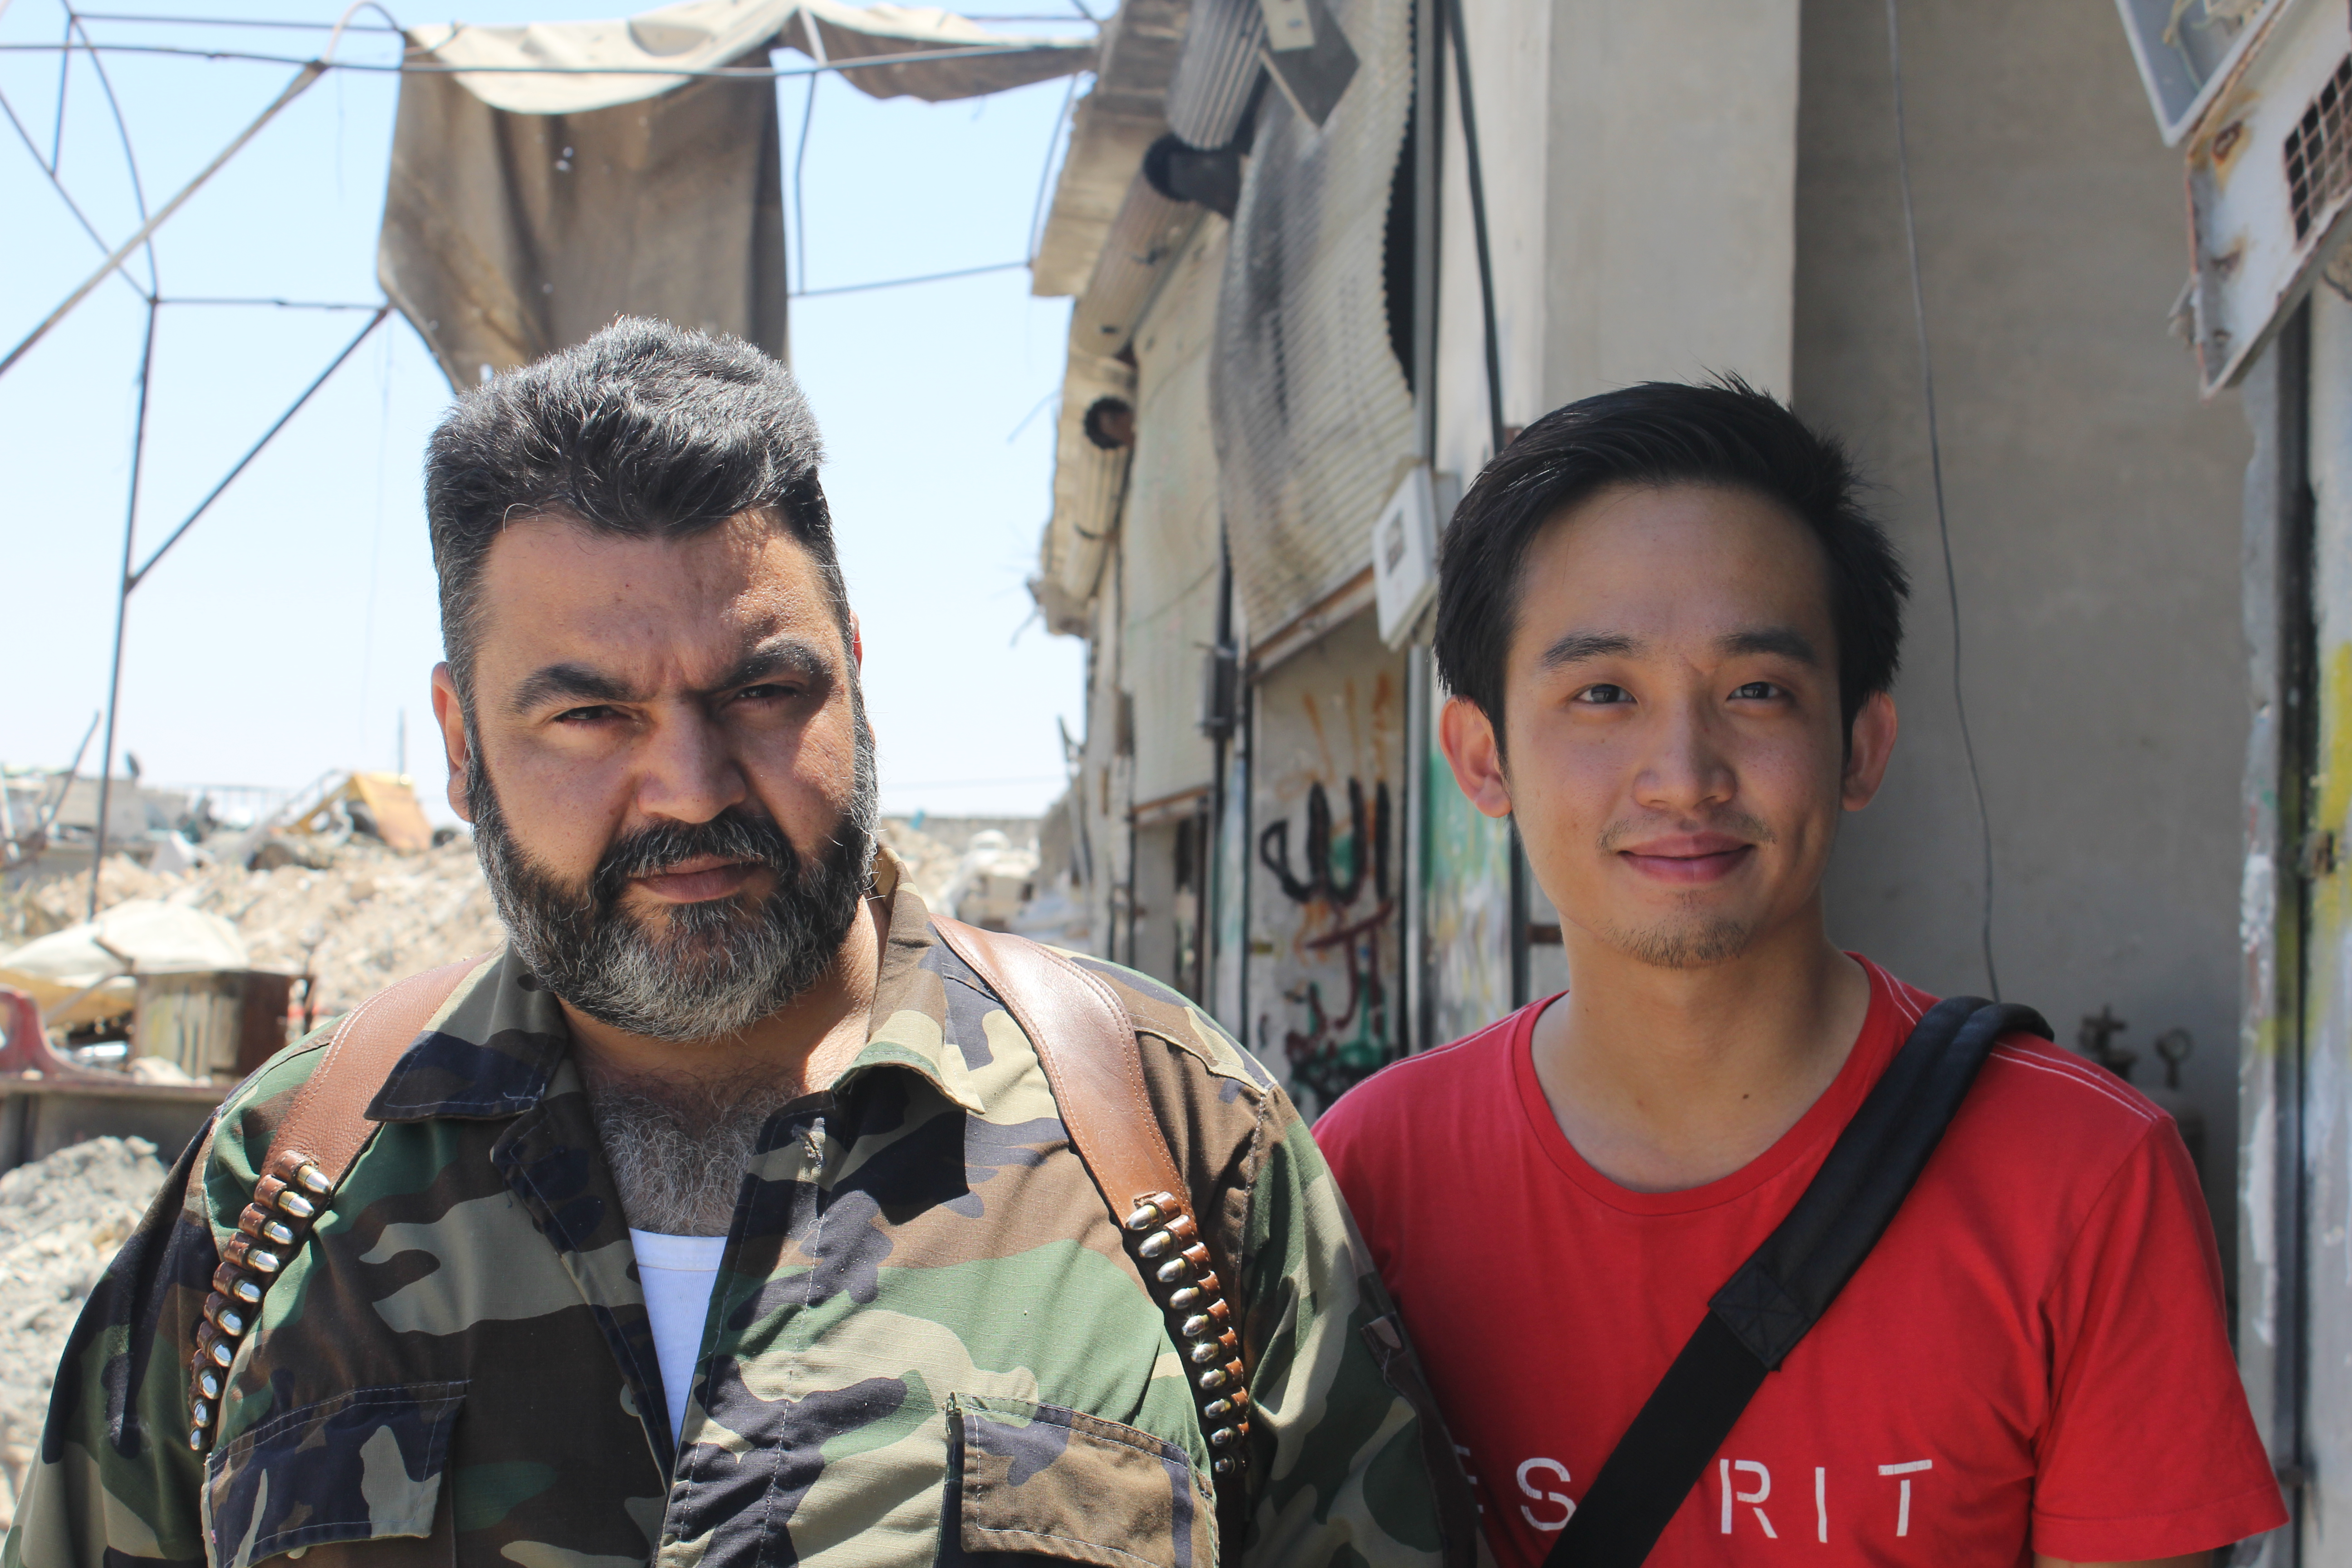 Lau with one of the commanders of the Free Syrian Army in 2012. The NGO that hosted him was based on the rebel-held part of Aleppo. Photo: Chris Lau.